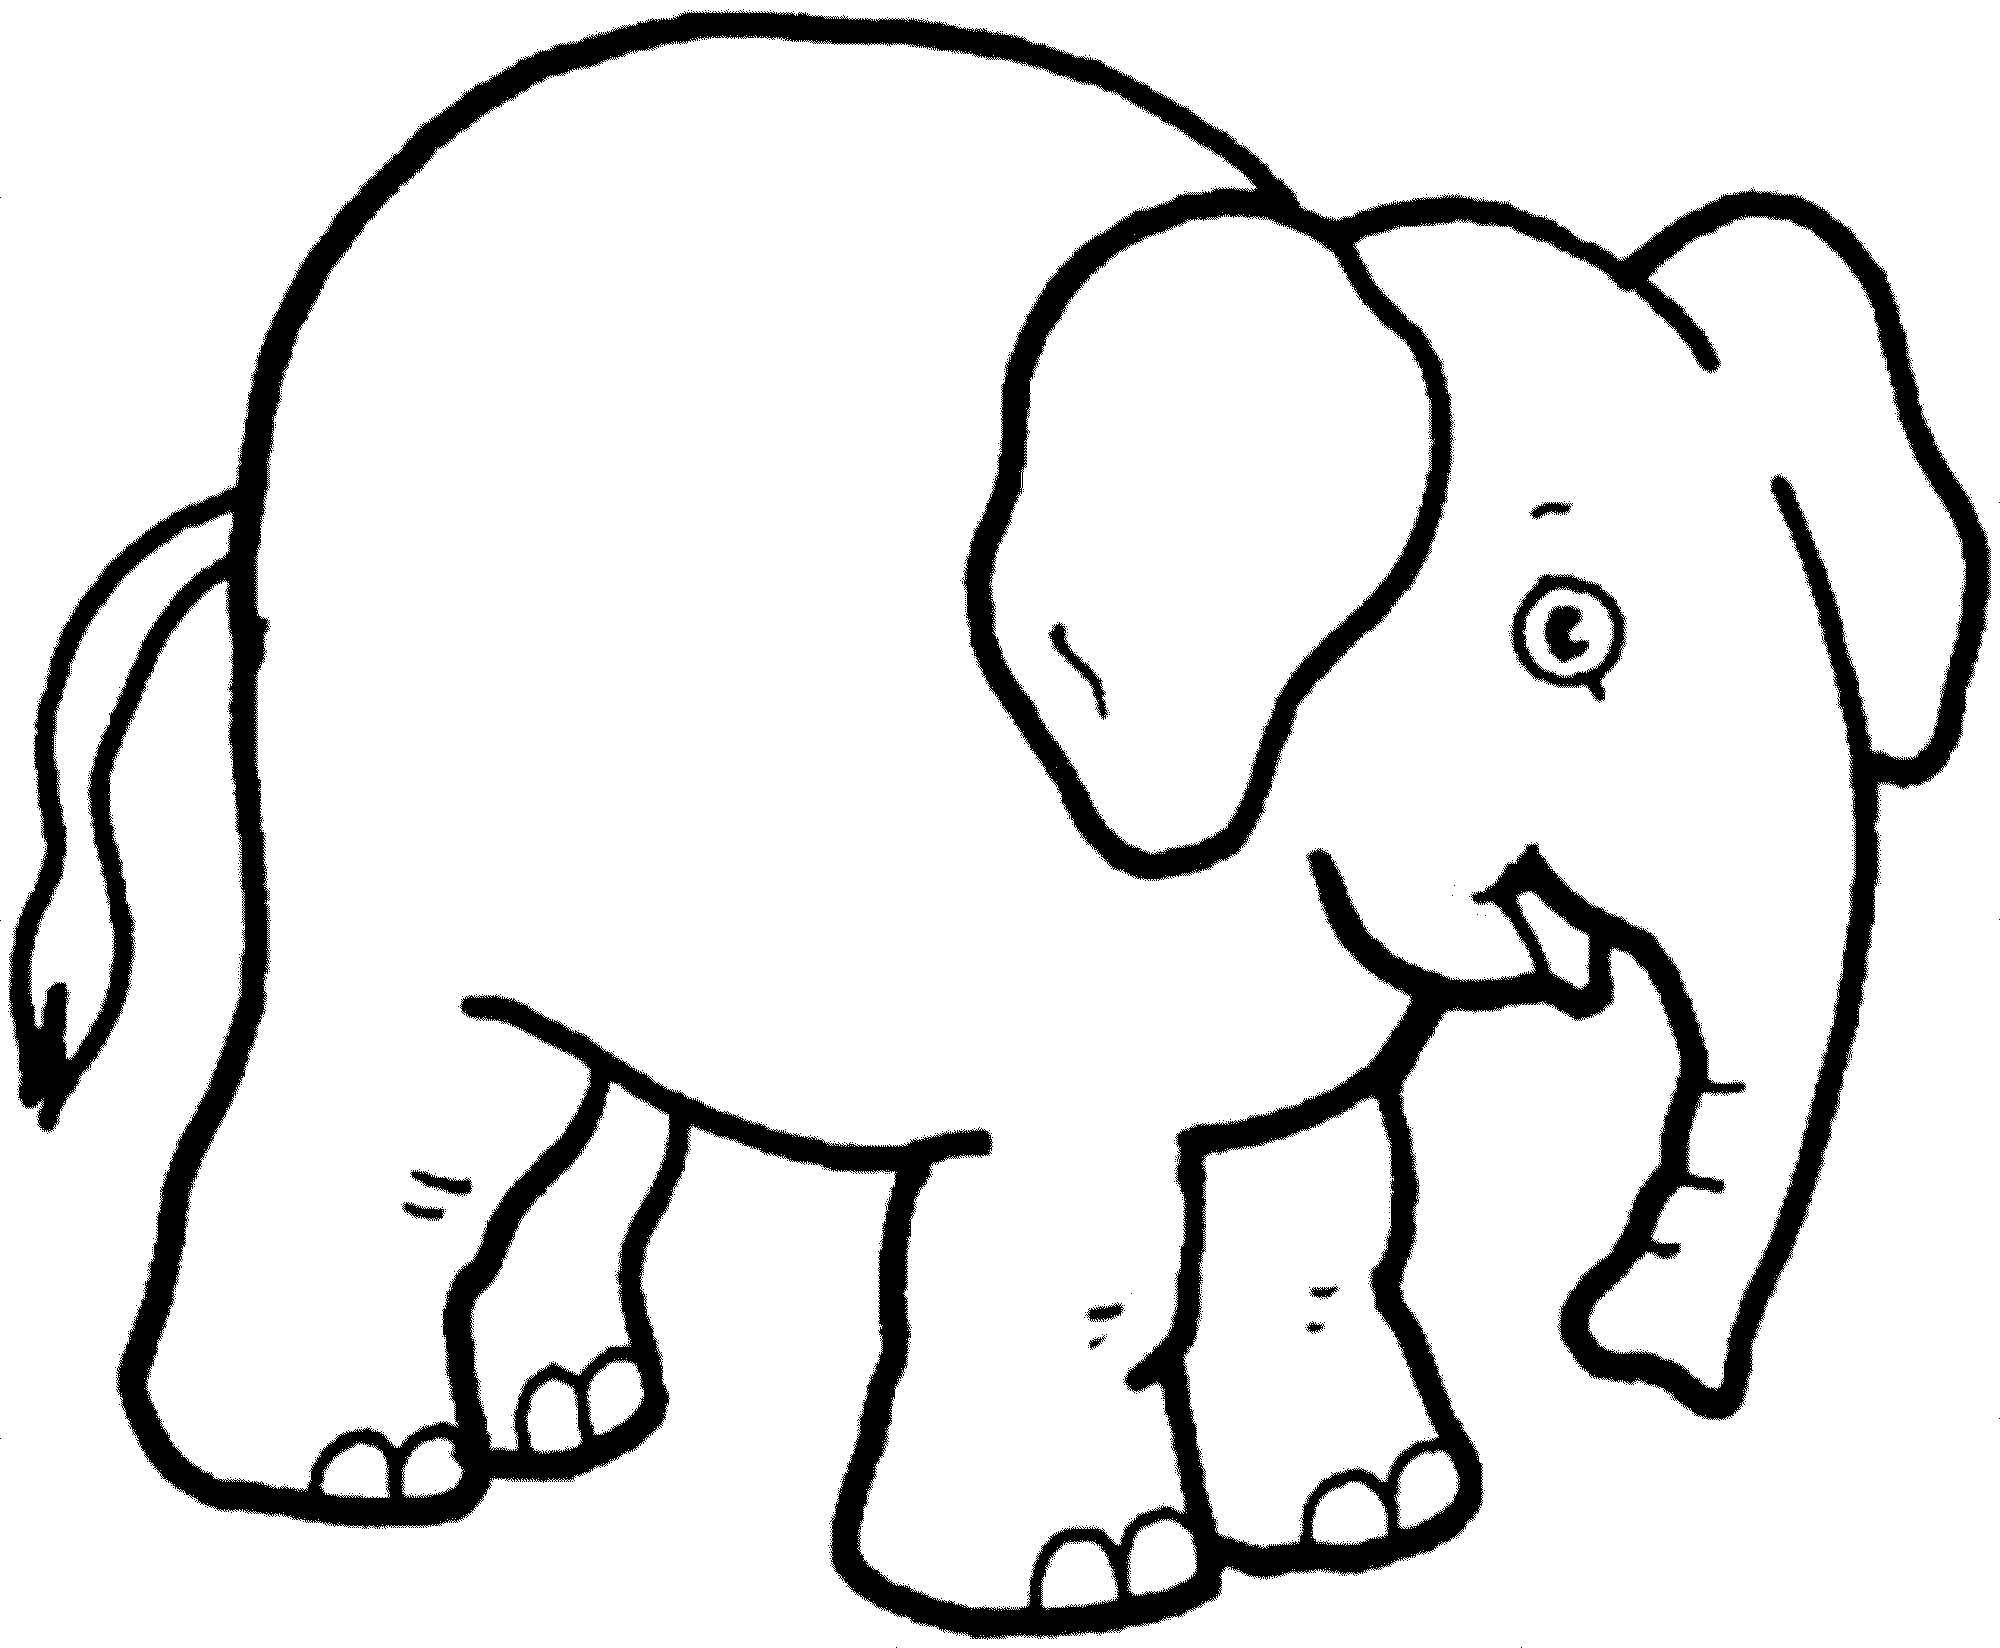 colouring pictures of elephant print download teaching kids through elephant coloring pictures elephant colouring of